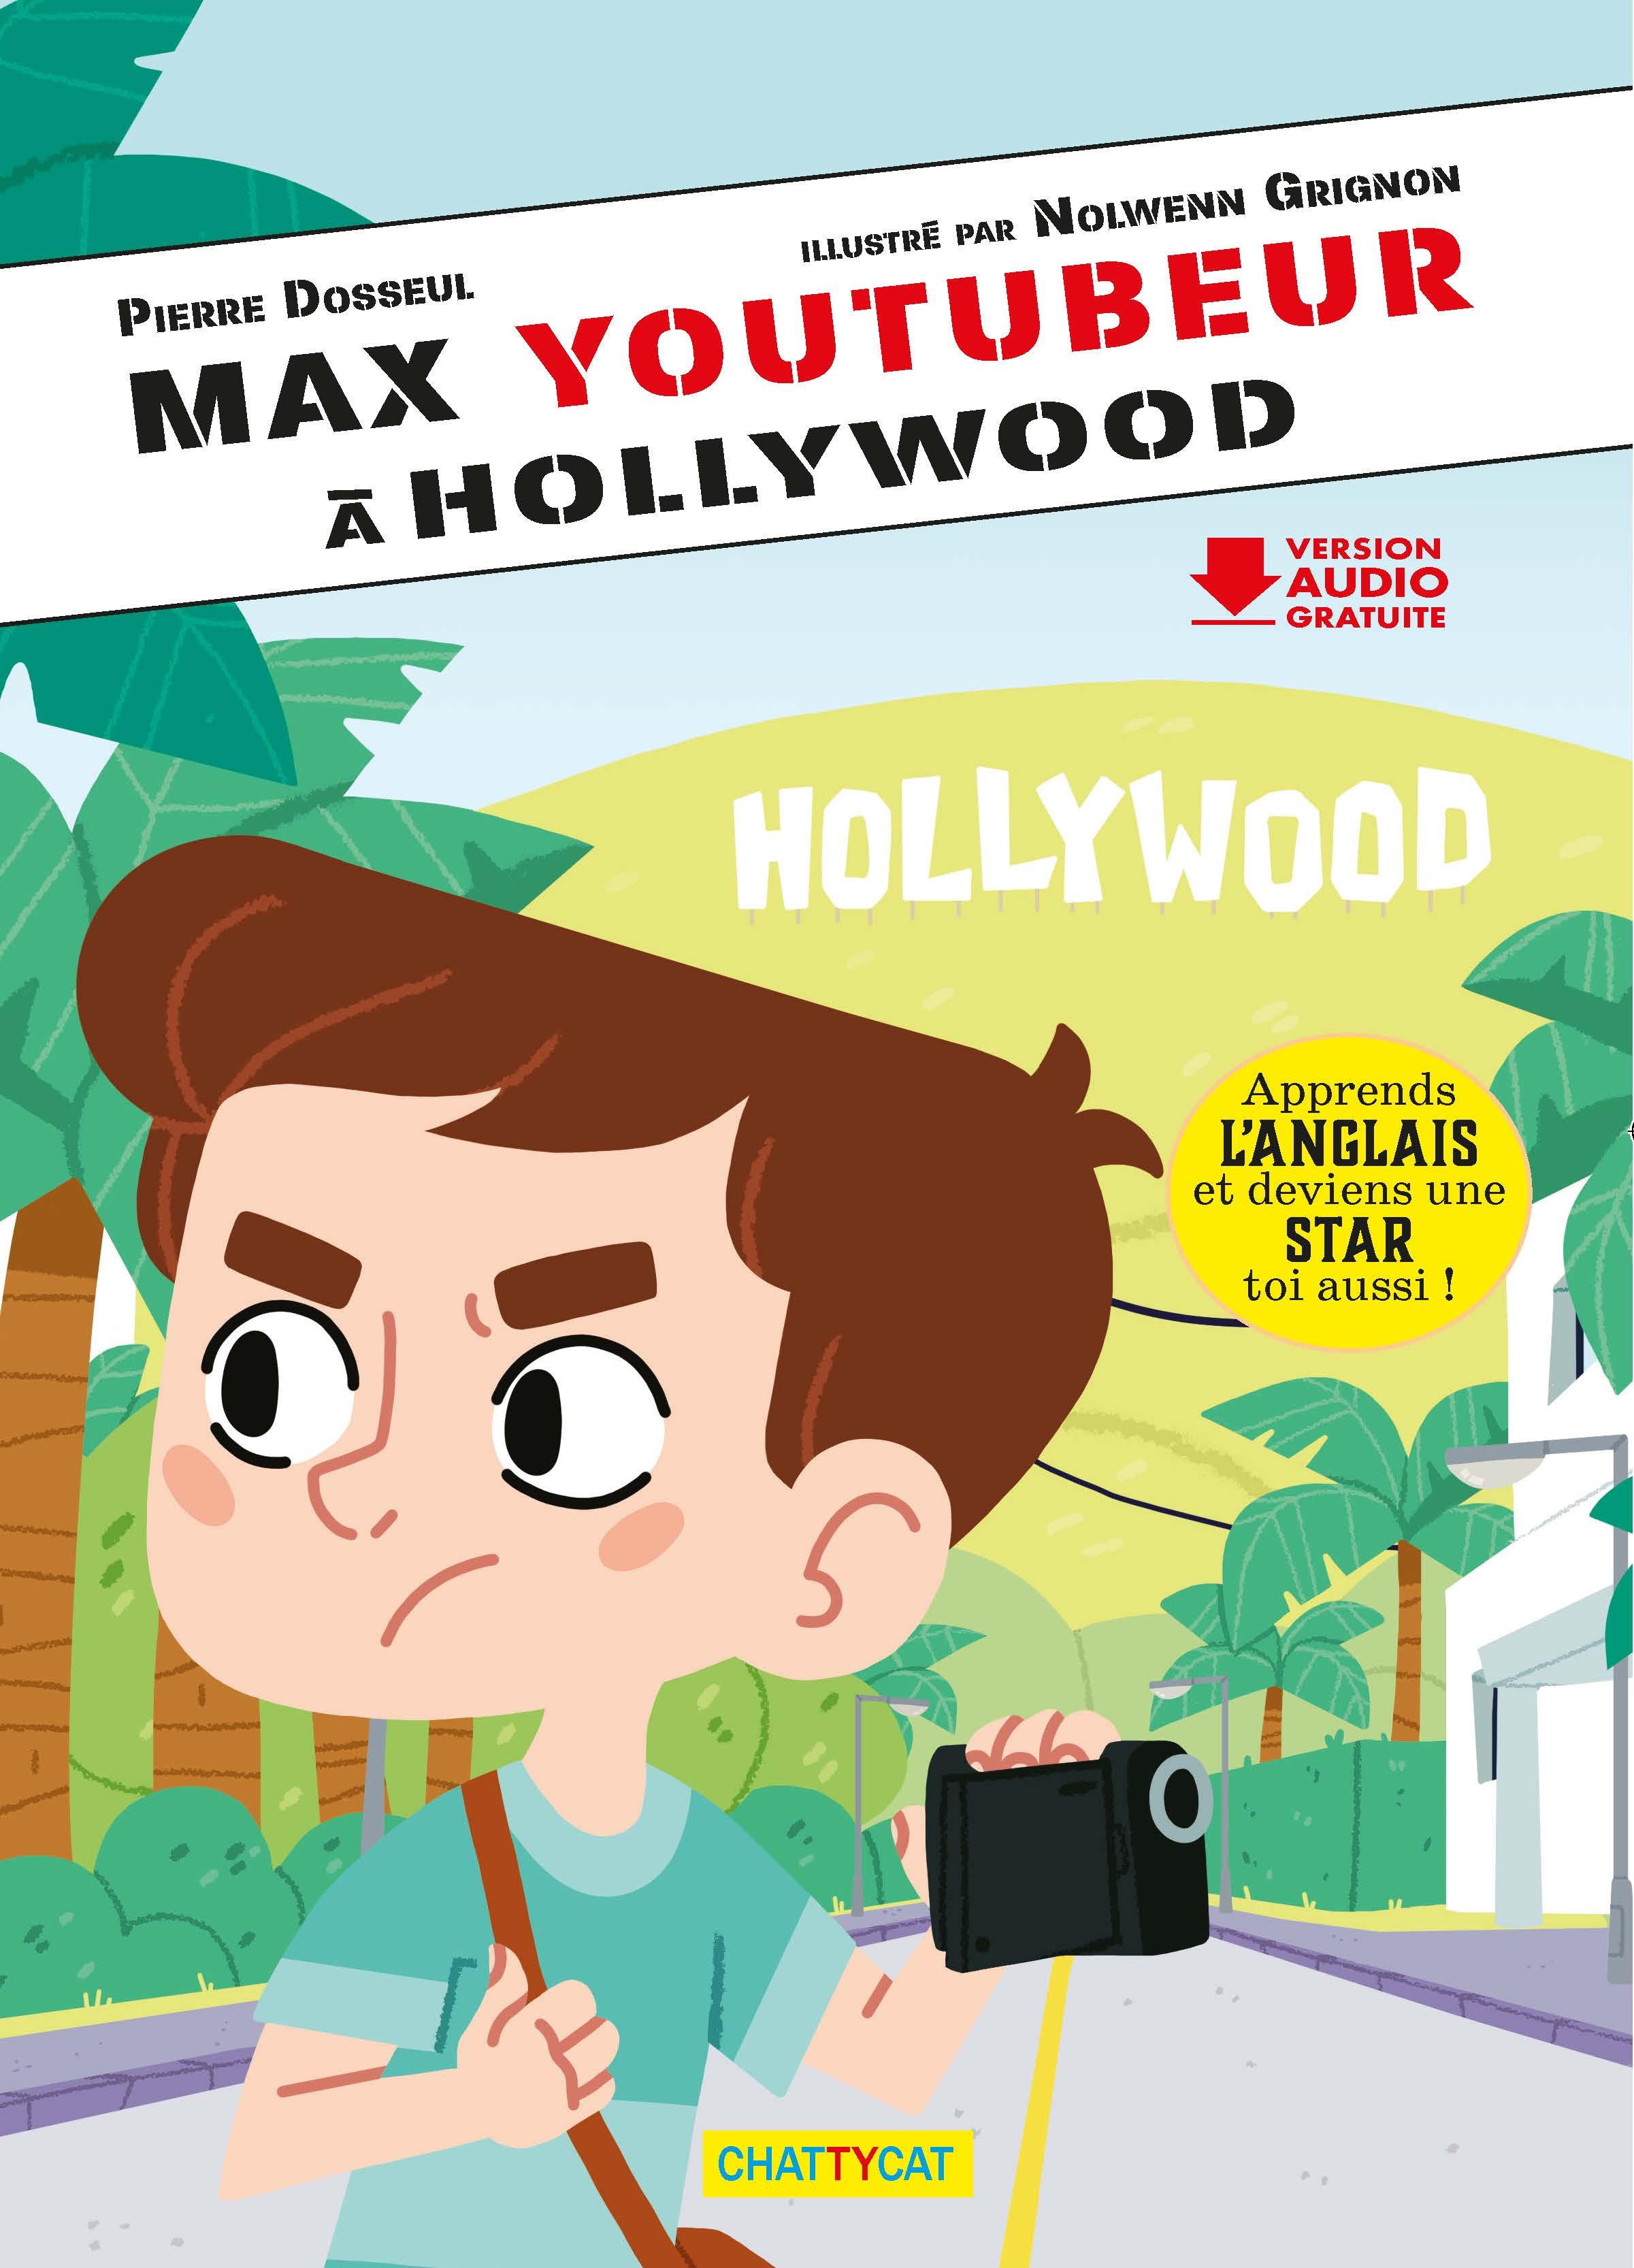 MAX YOUTUBEUR A HOLLYWOOD